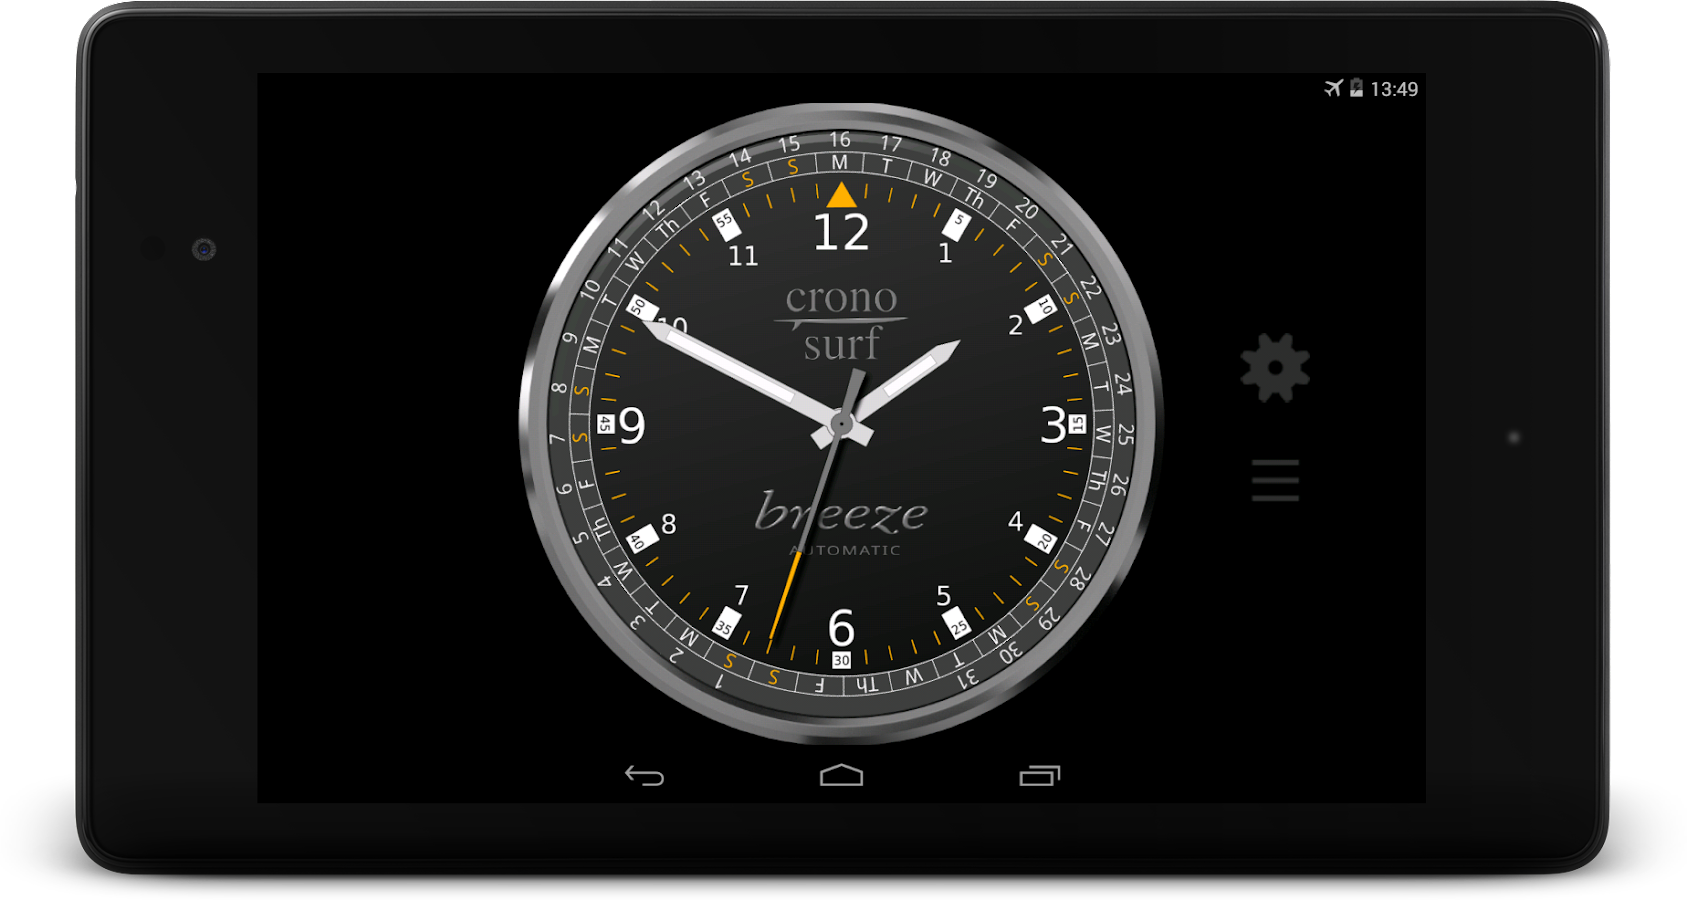 Cronosurf Breeze & Air Pro Screenshot 10